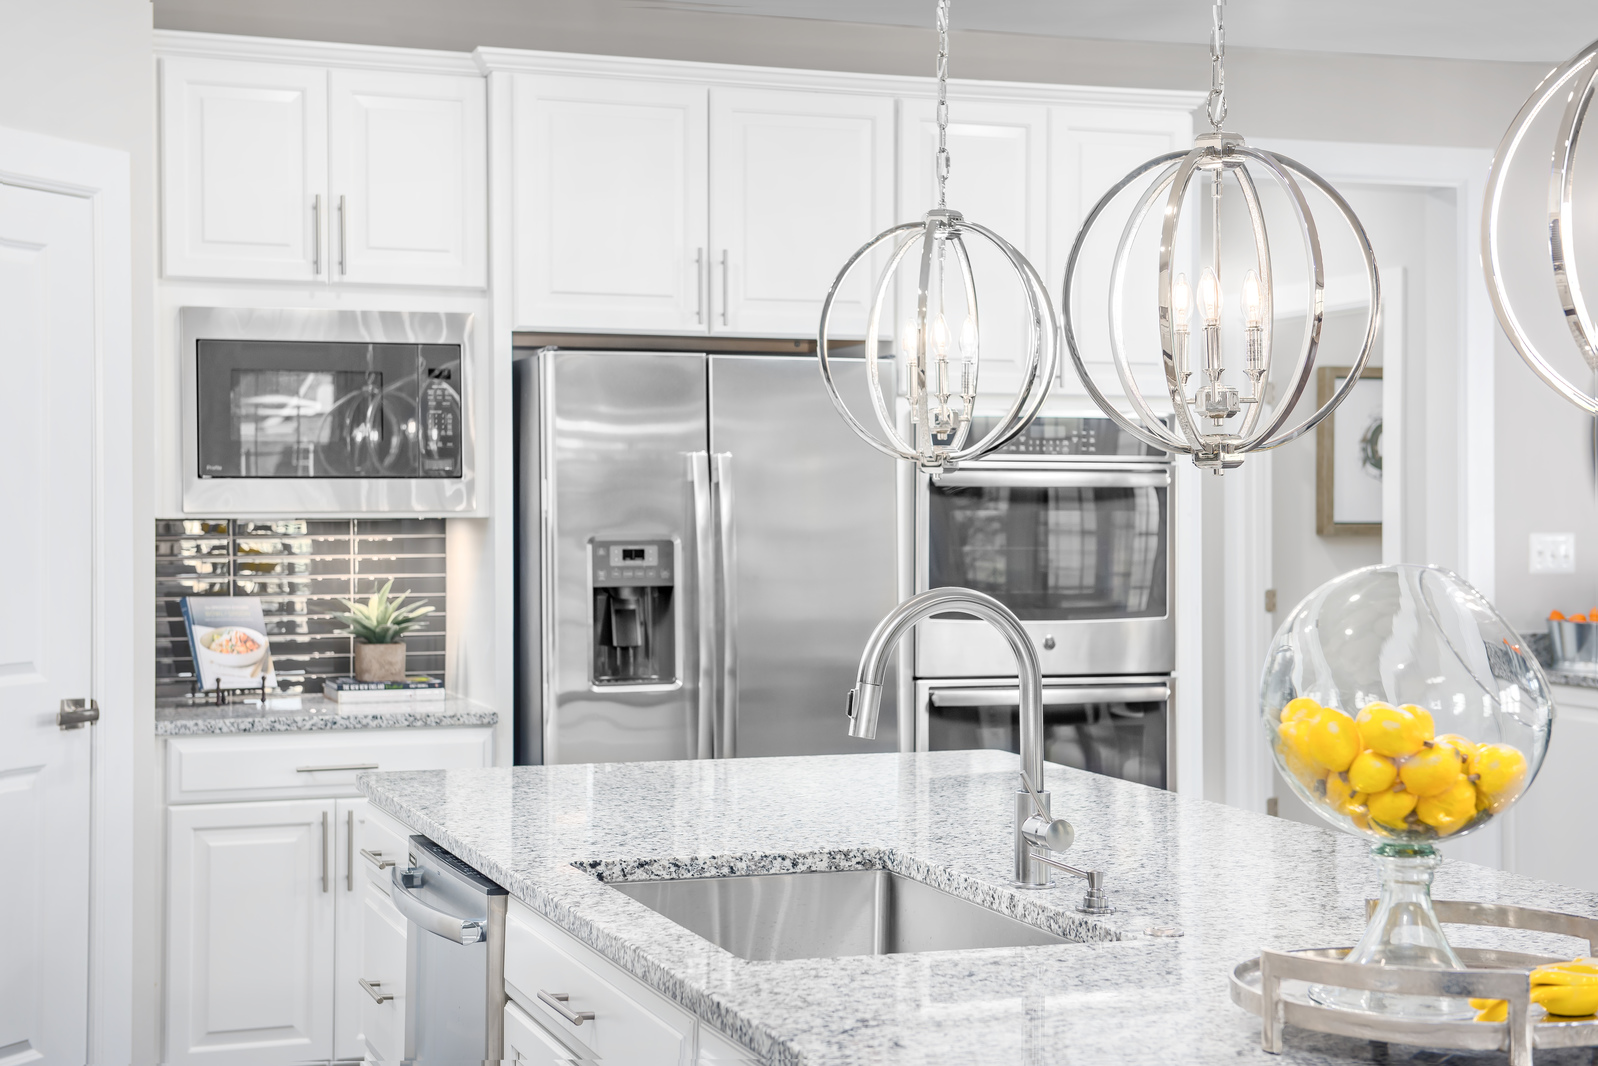 At Greystone, every executive home includes a gourmet kitchen with an oversized island, double wall oven, custom range hood and more.